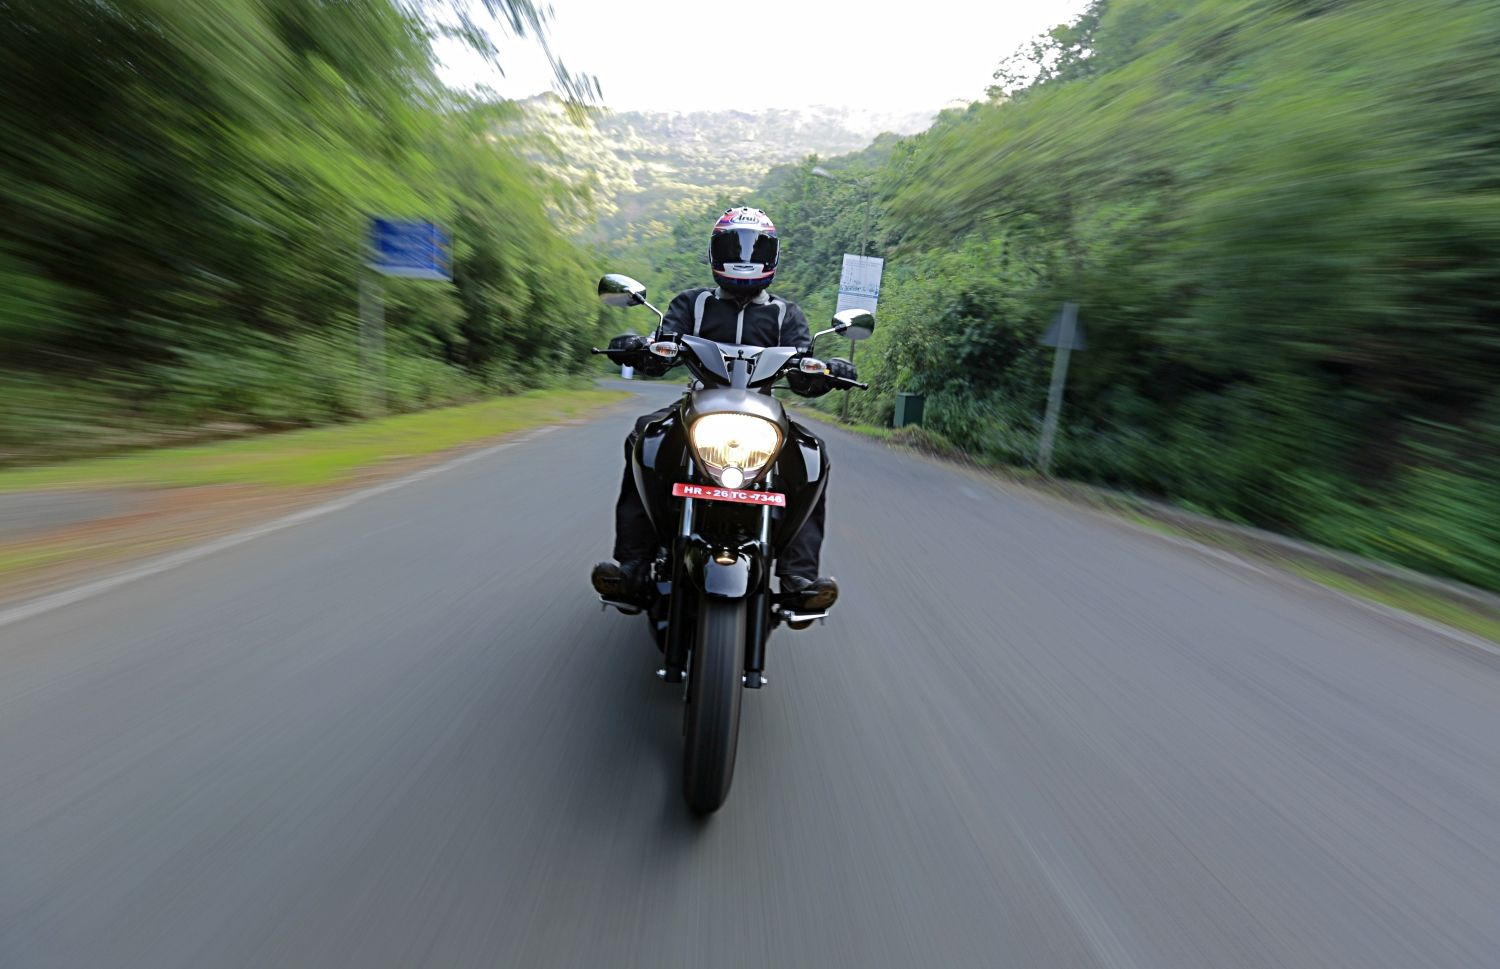 Suzuki Intruder 150: First Ride Review